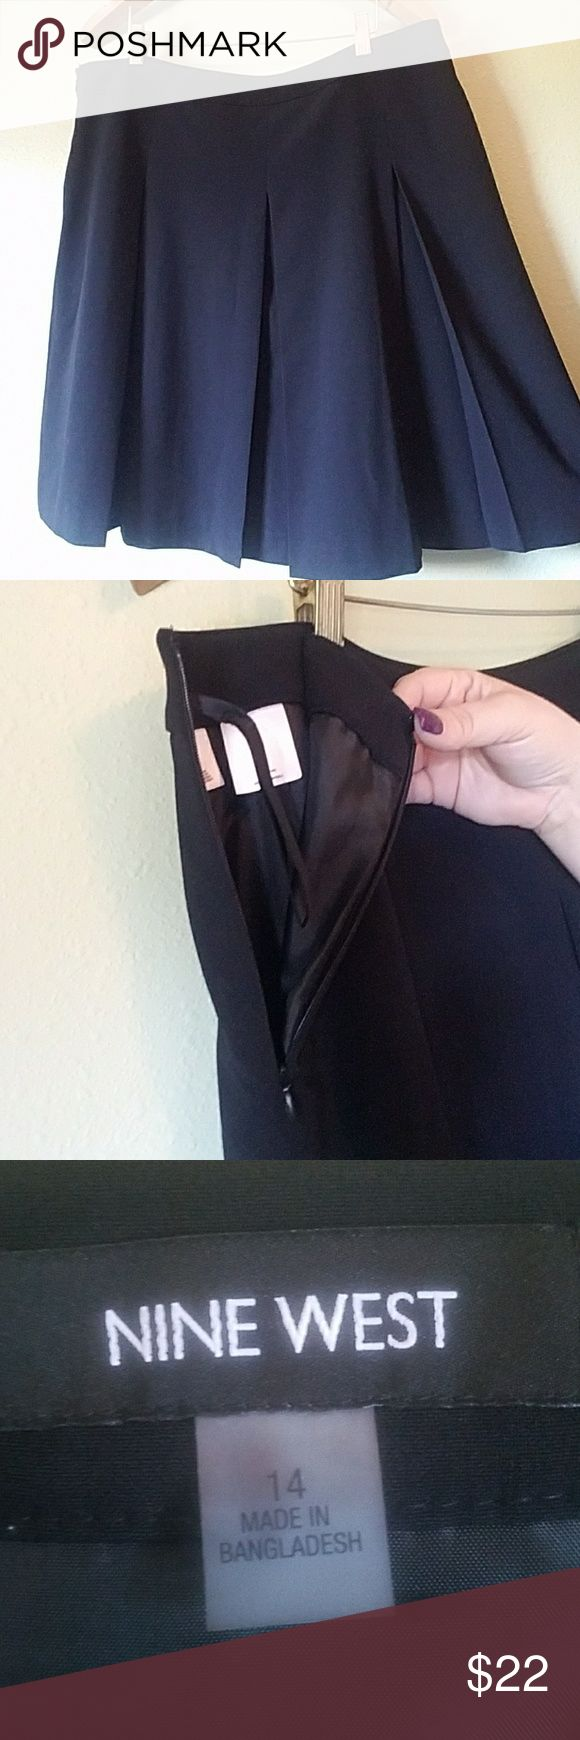 Nine West Skirt Beautiful pleated skirt by Nine West in size 14. The skirt length is 24 inches from waist to hem with full lining inside and a zipper on the side. The skirt has beautiful pleating and would go perfect paired with a colorful Blazer and colorful heels. In amazing condition! Nine West Skirts Circle & Skater